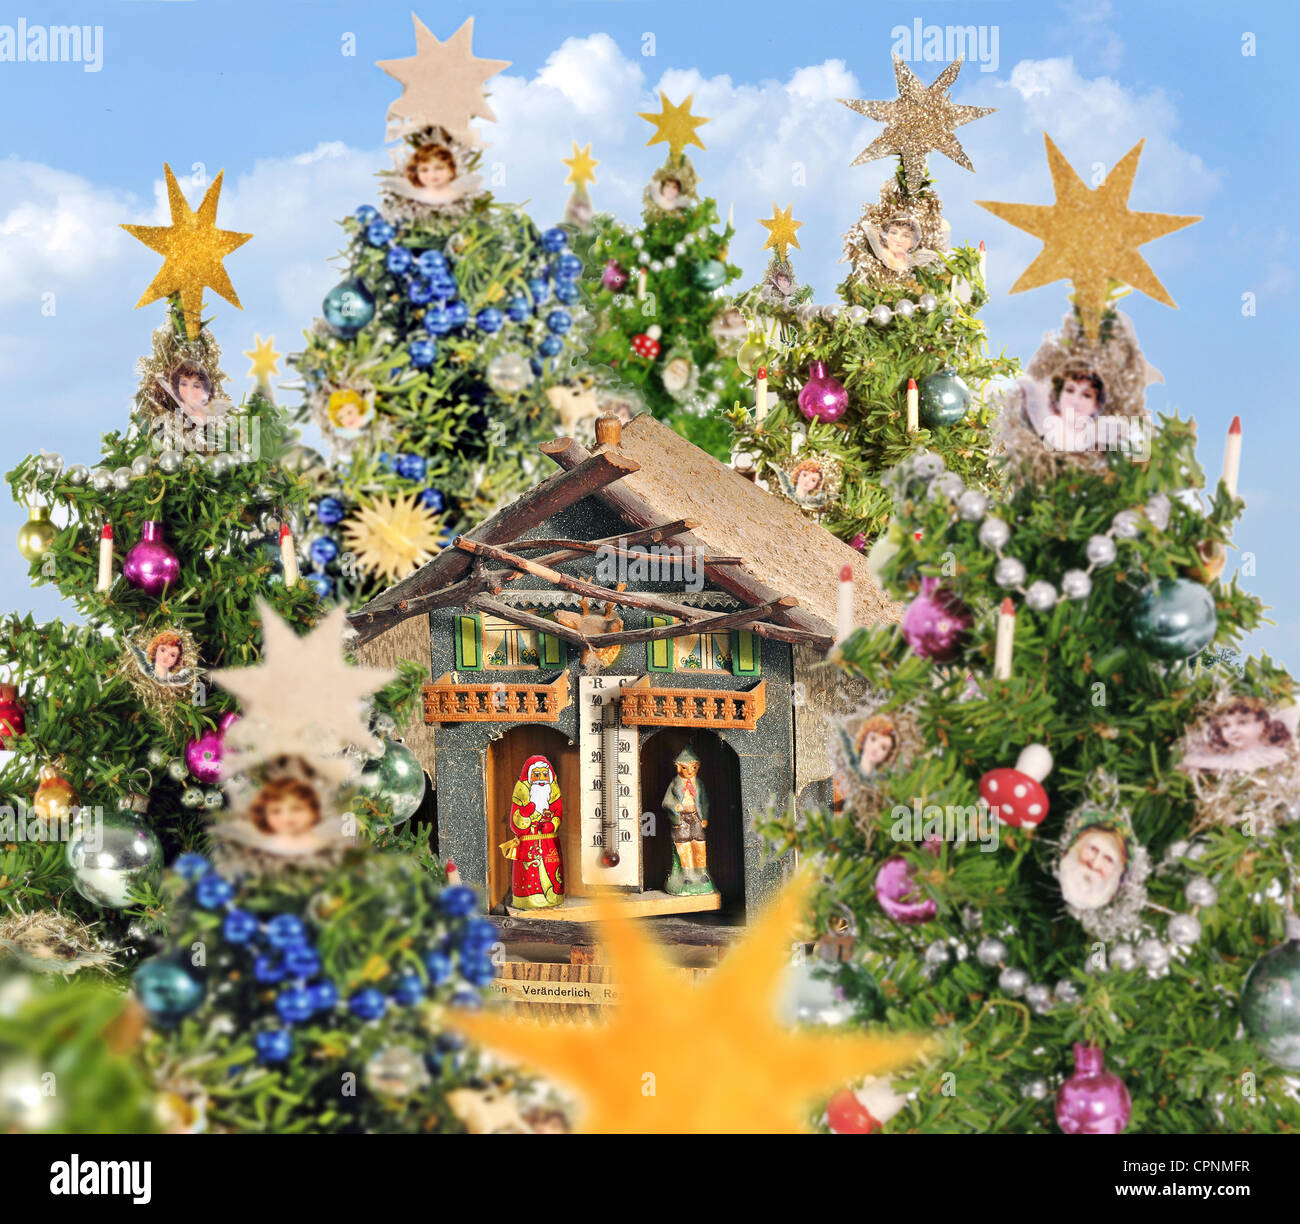 Christmas Weather.Christmas Christmas Weather Vintage Weather House In The